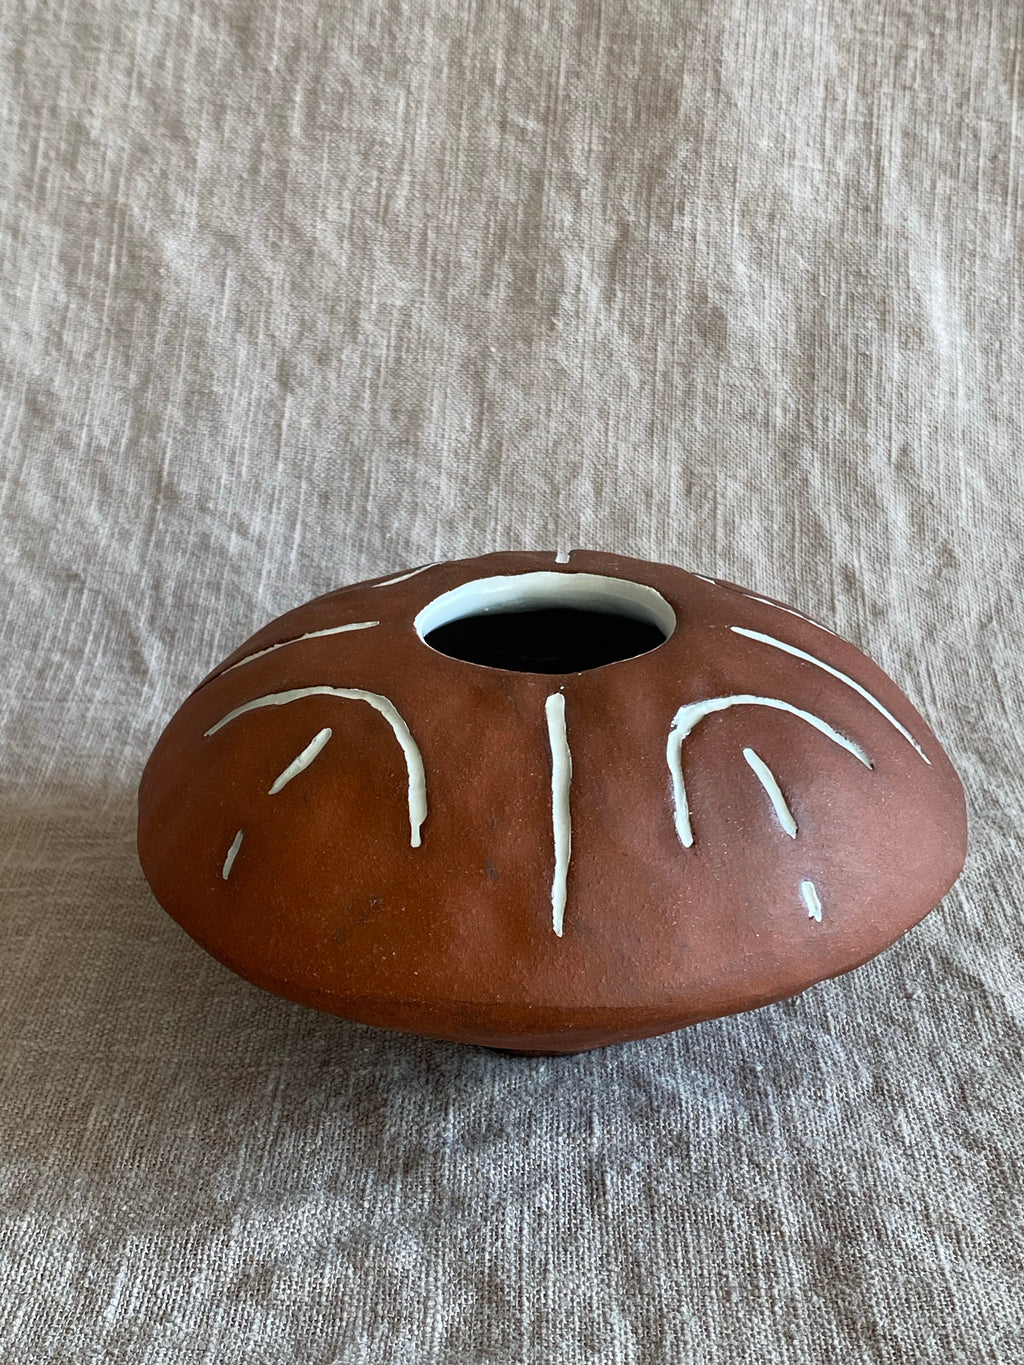 Decorative Flying Saucer Vase in Red Stoneware